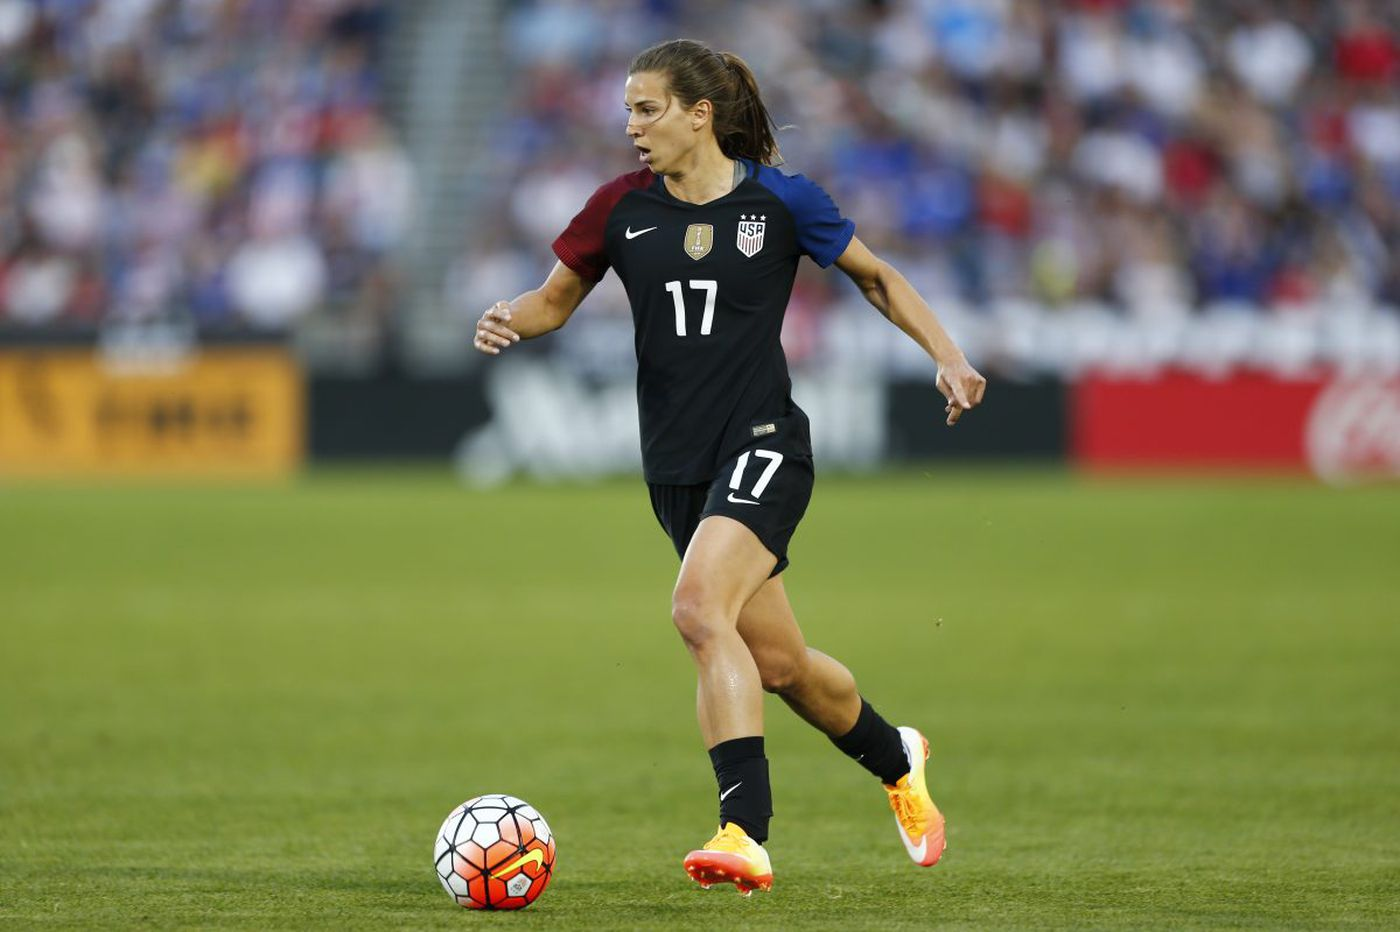 Tobin Heath, Christen Press, Julie Ertz return to U S